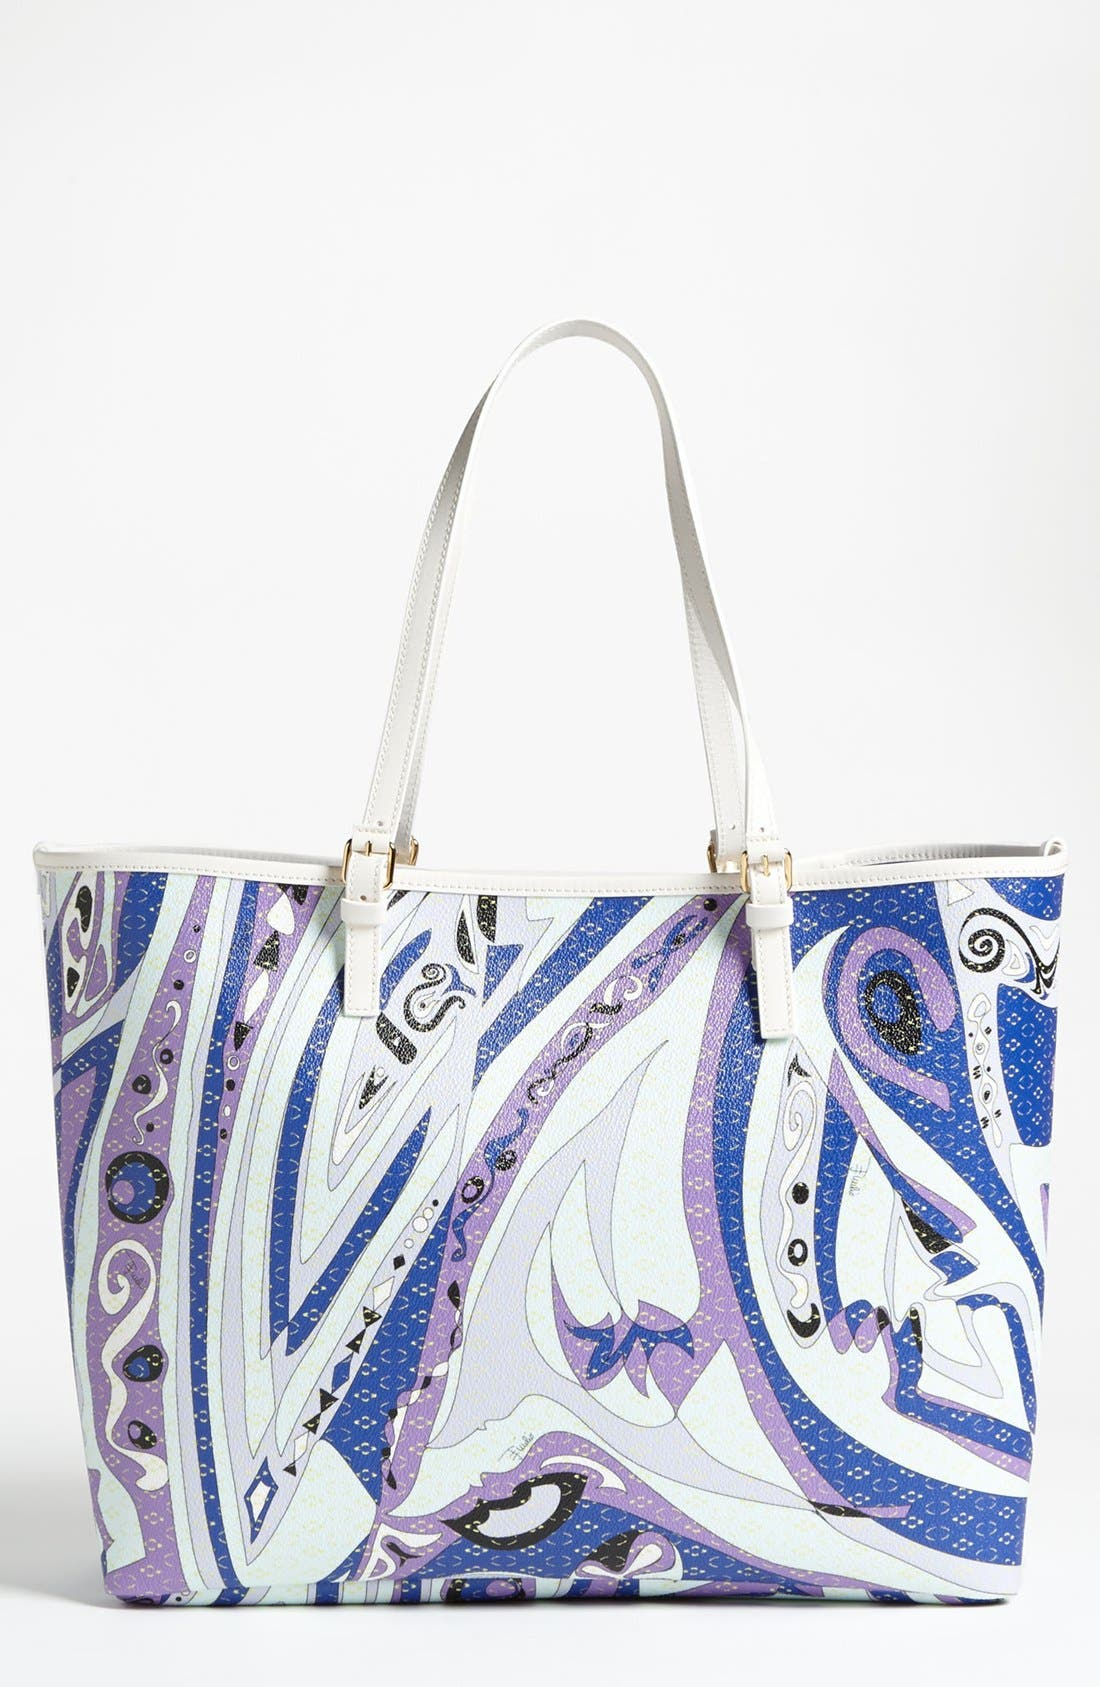 Alternate Image 1 Selected - Emilio Pucci 'Large' Tote